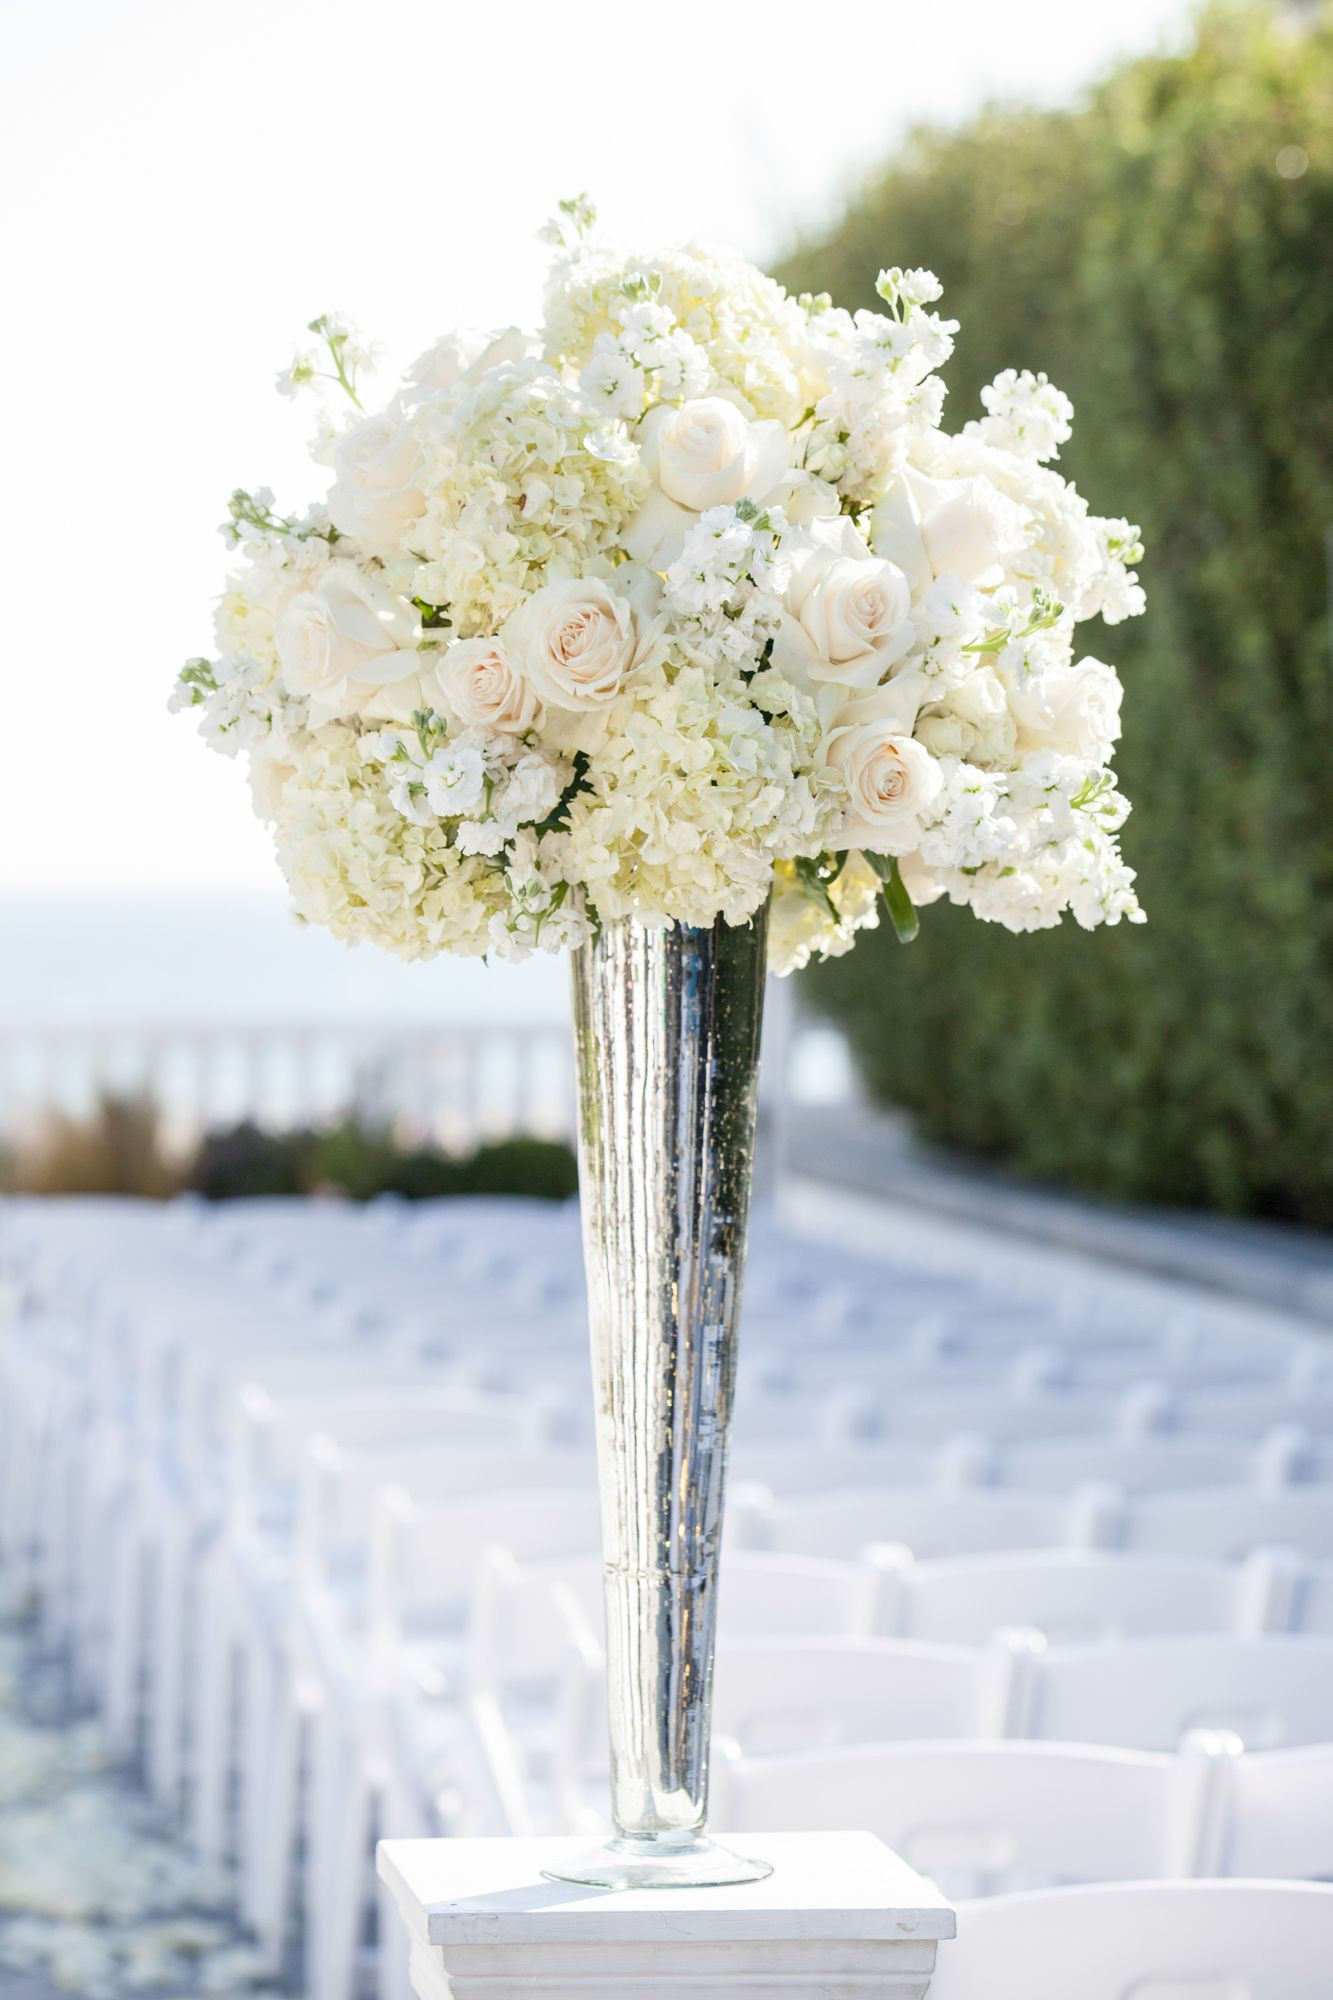 wedding sand vase of white and silver vase pics xh vases silver vase chinese export 1i 0d regarding white and silver vase images tall white rose and hydrangea centerpiece in a silver lined vase